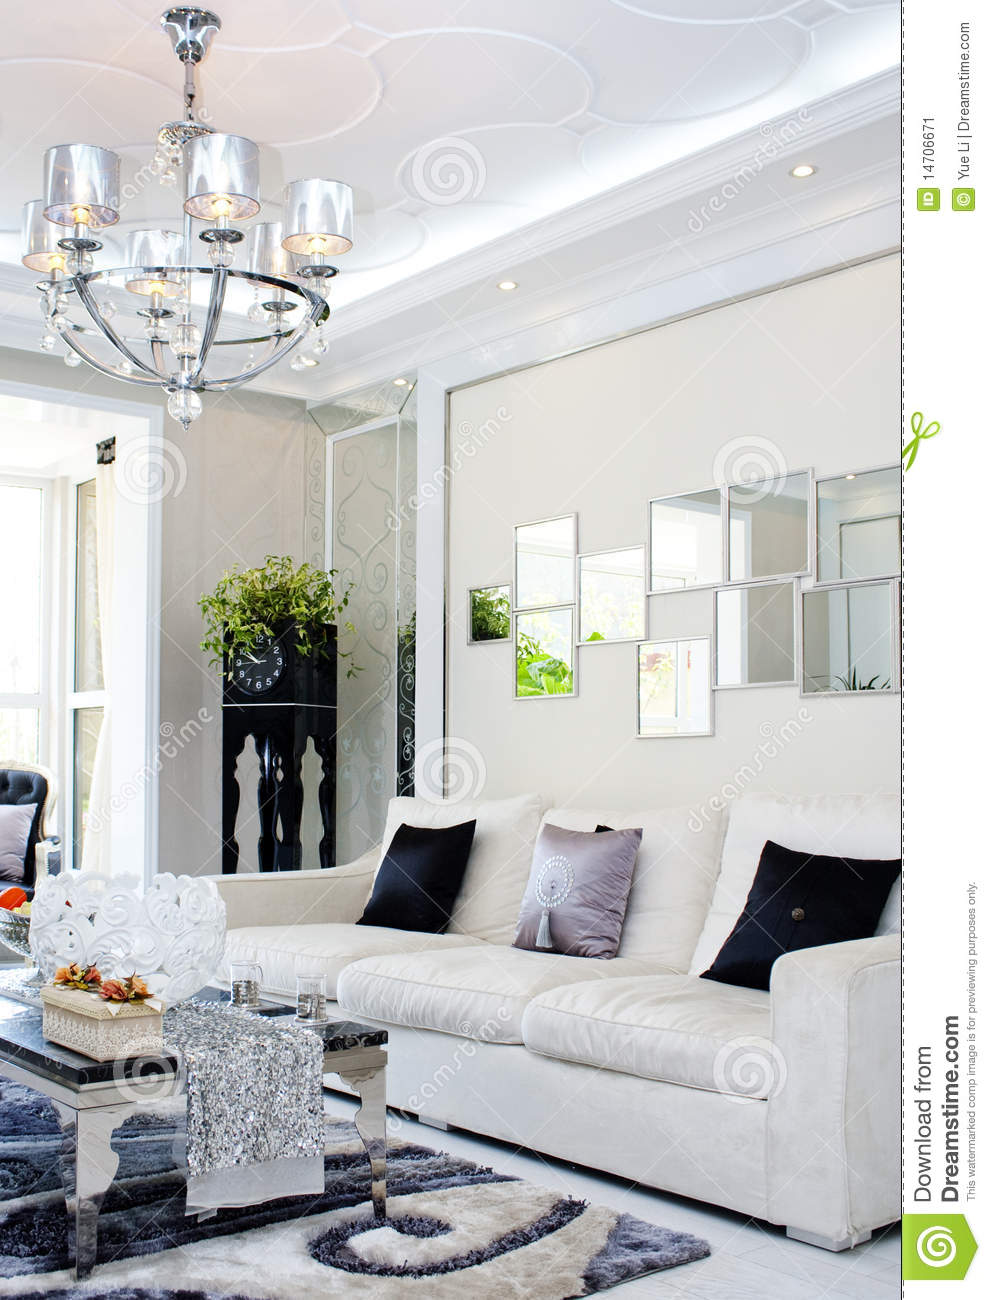 Nice home stock image. Image of home, design, lifestyle - 14706671